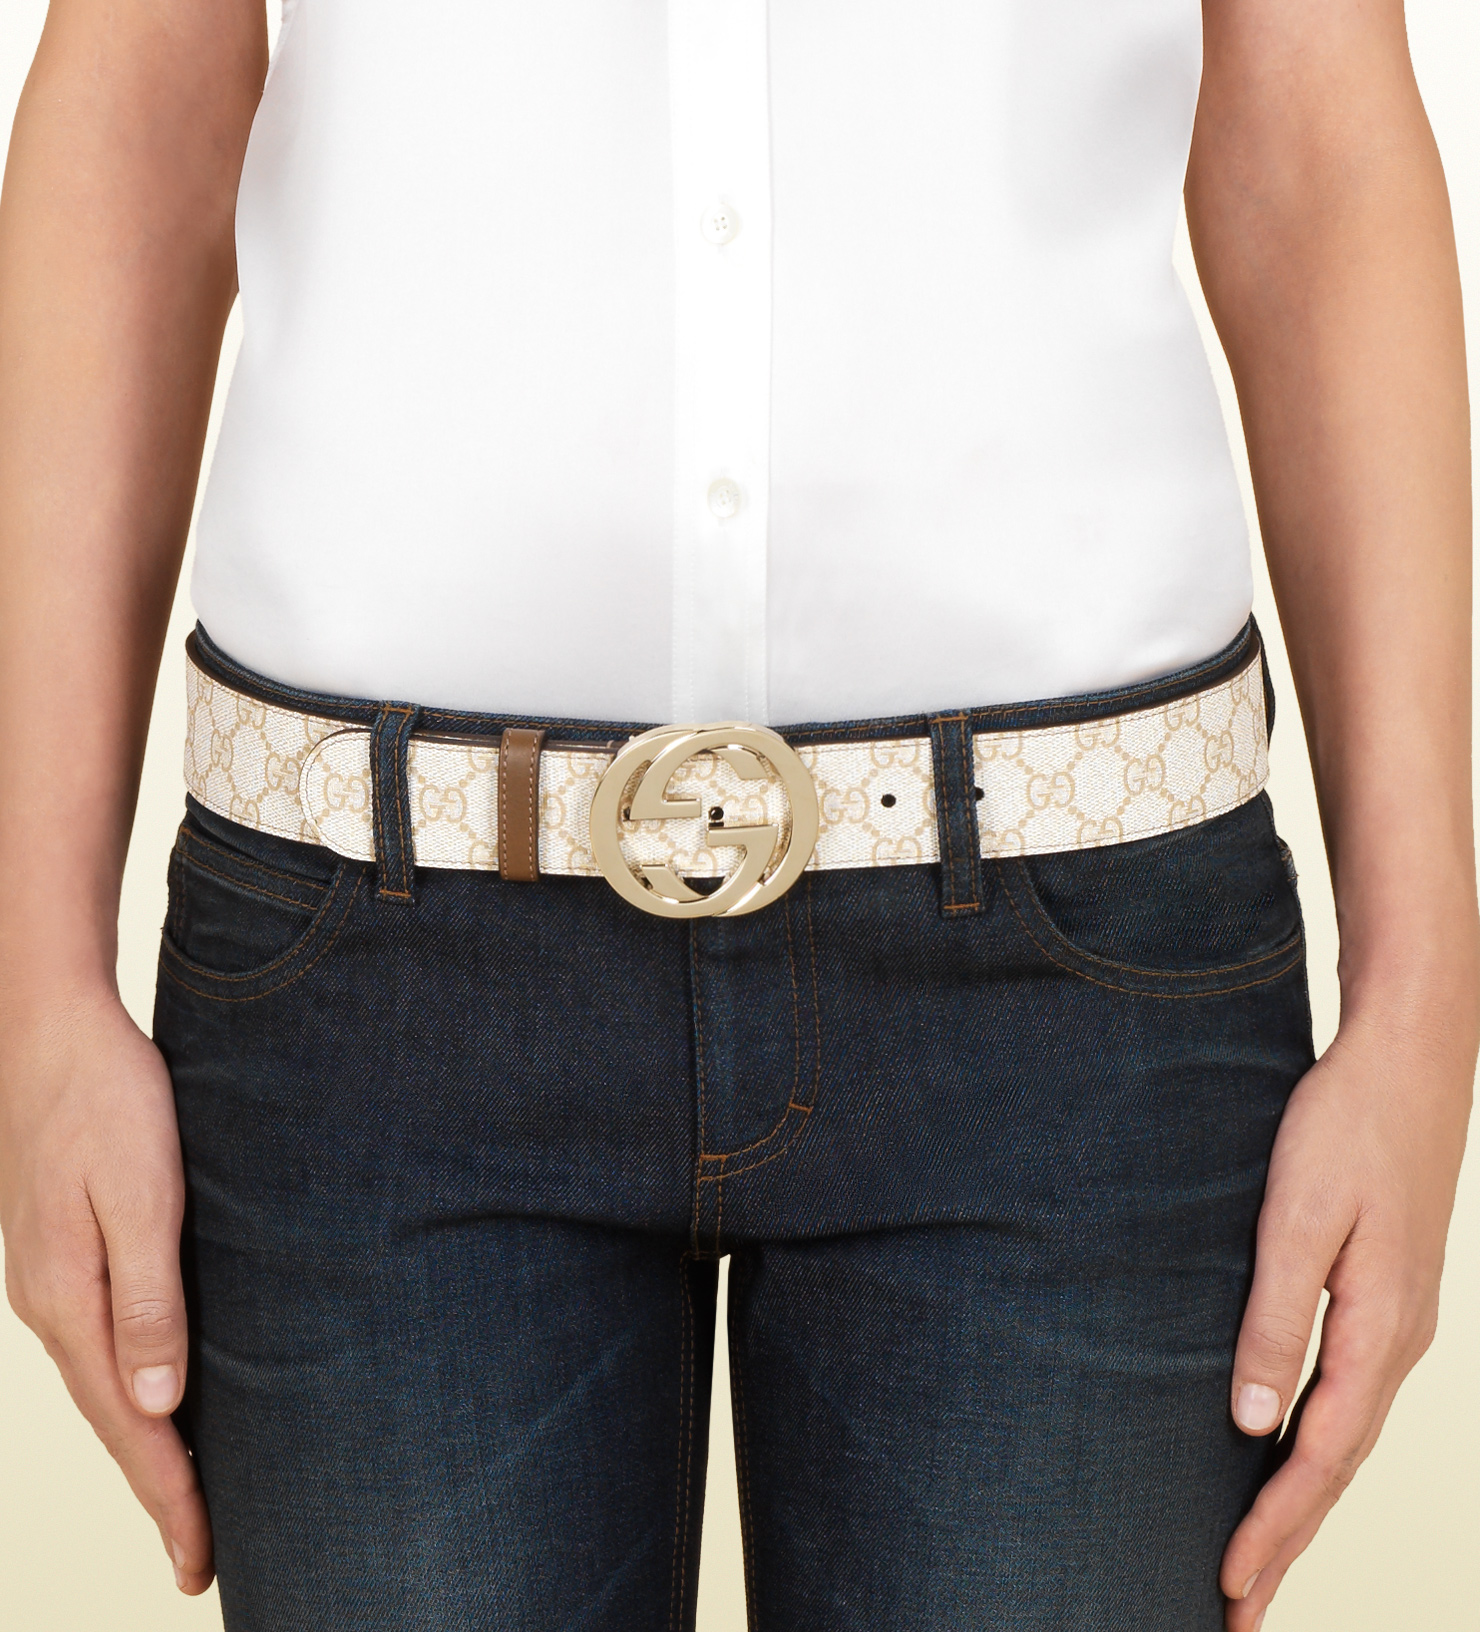 c8a2b381d48 Gucci Gg Supreme Canvas Belt with Interlocking G Buckle in Natural ...